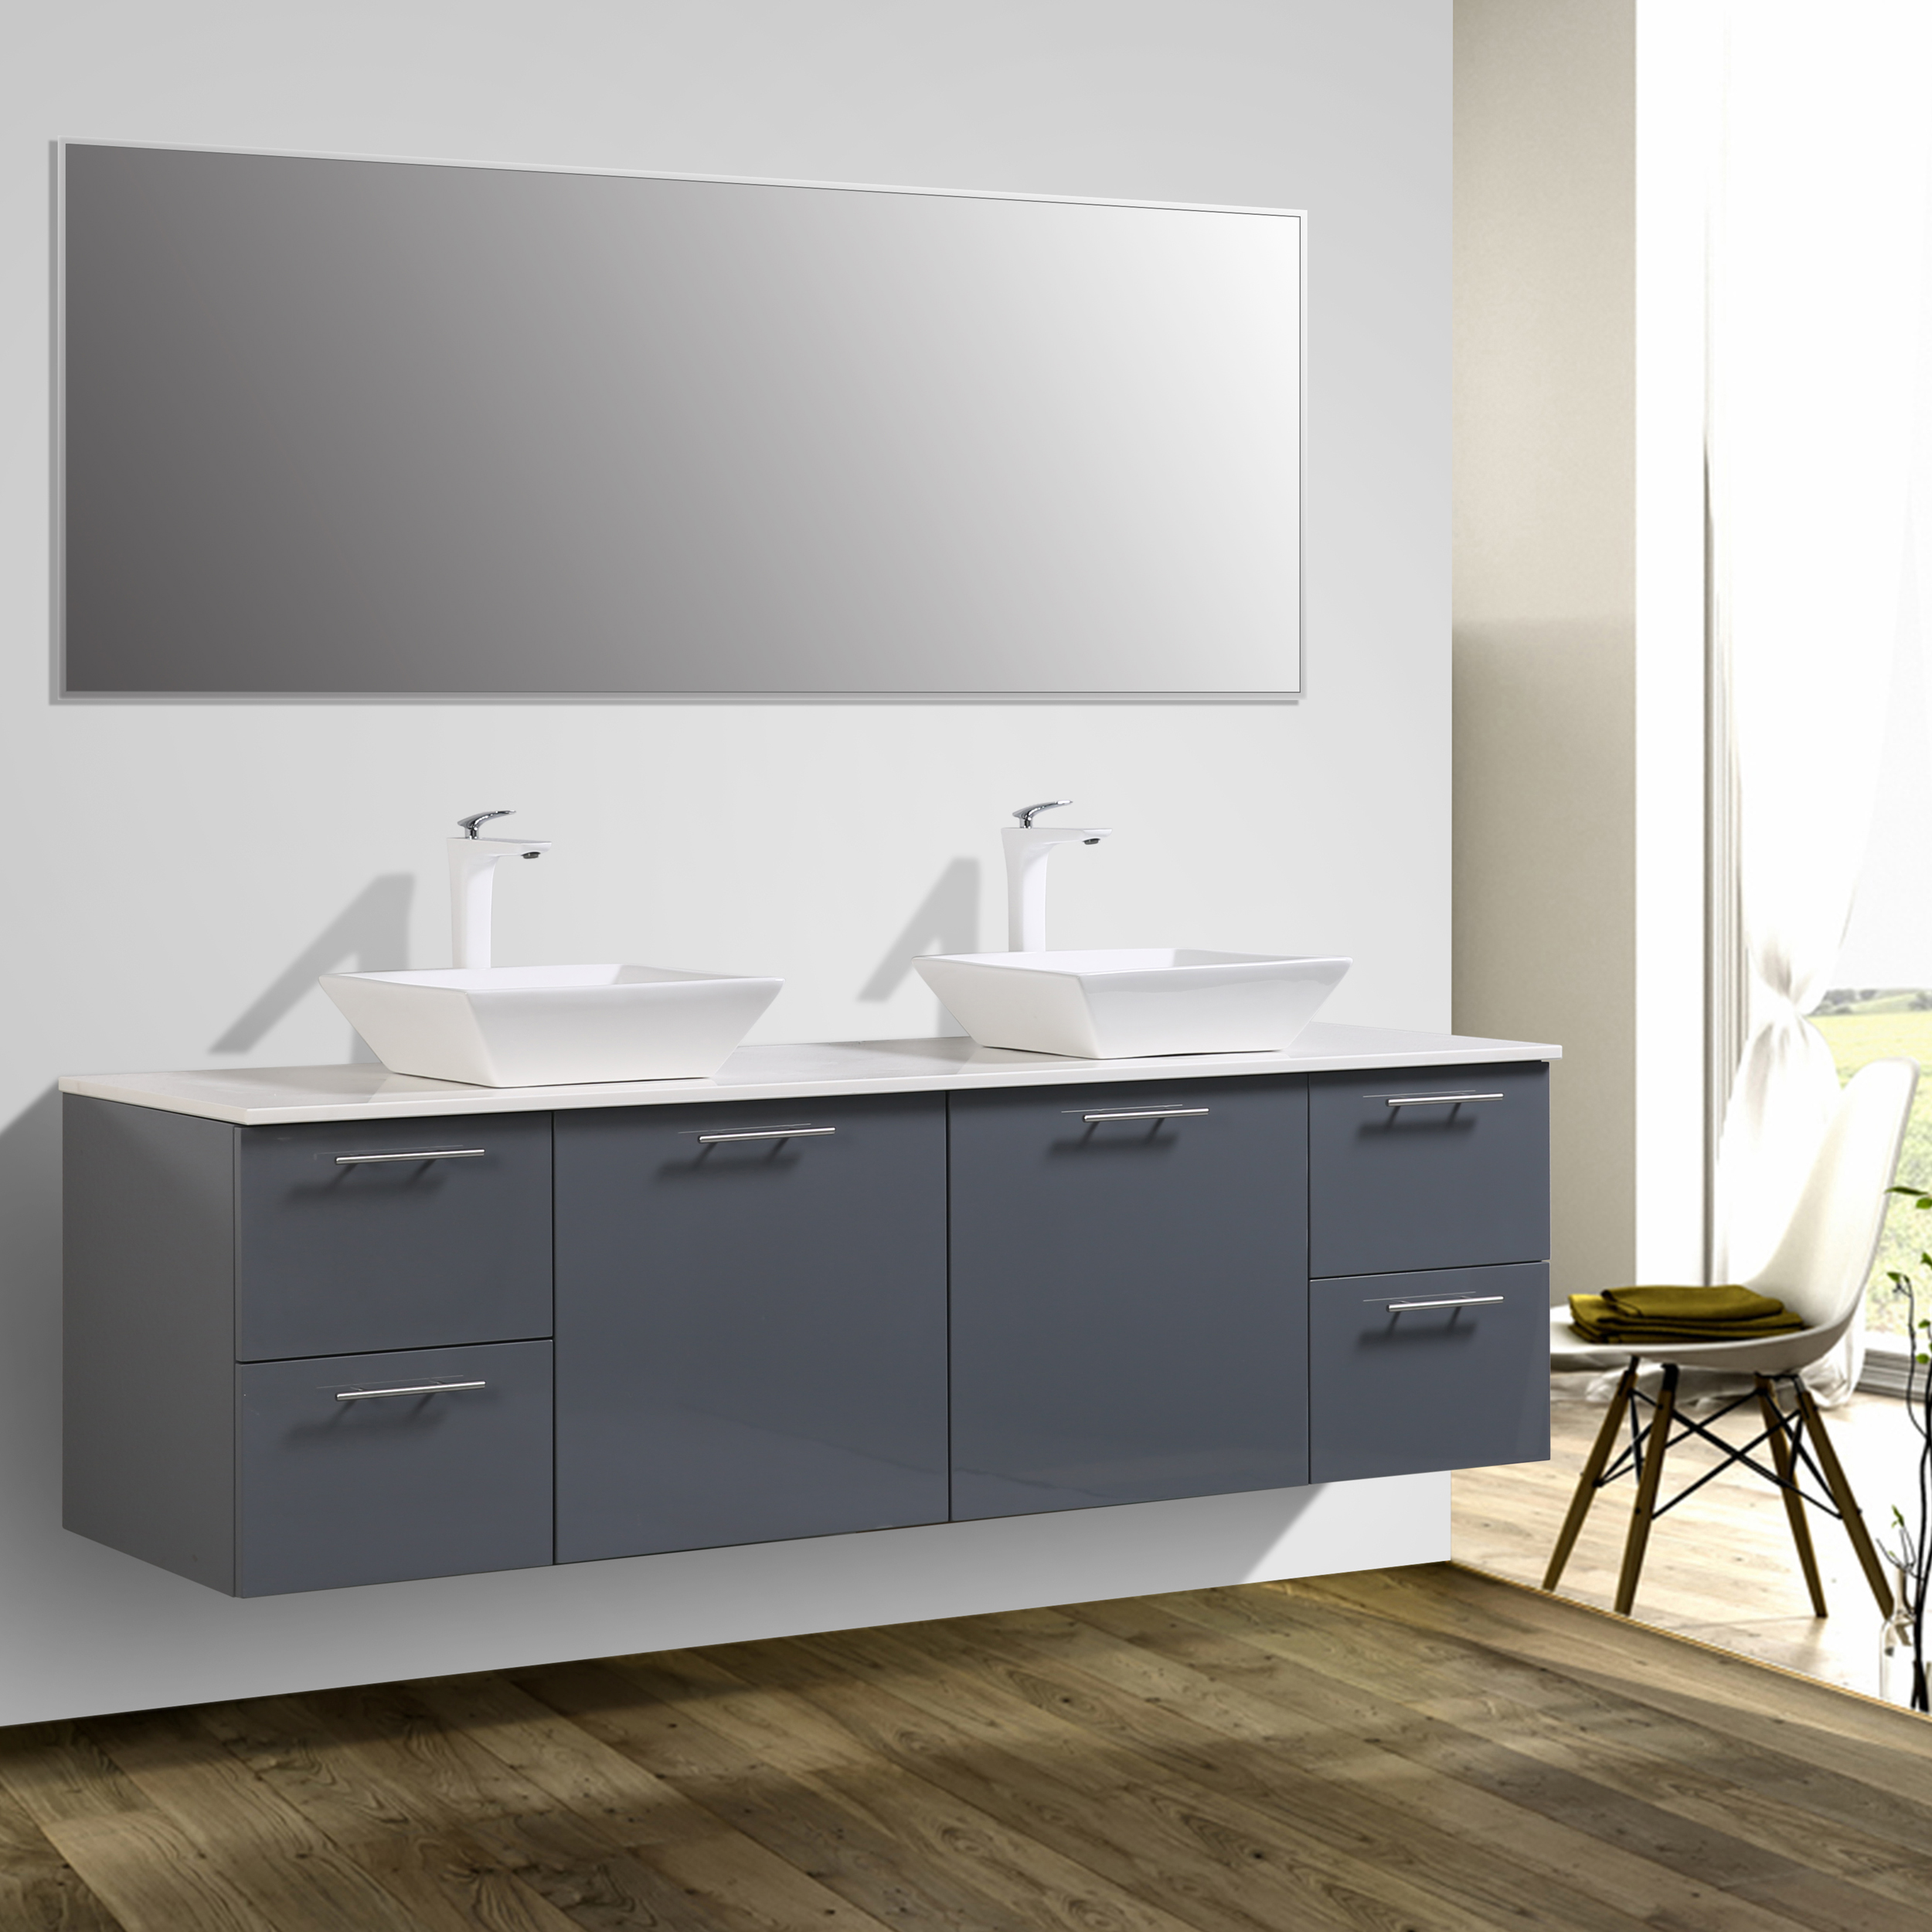 usa bathroom set grey in ks single zebra dior zg vanity virtu gray c